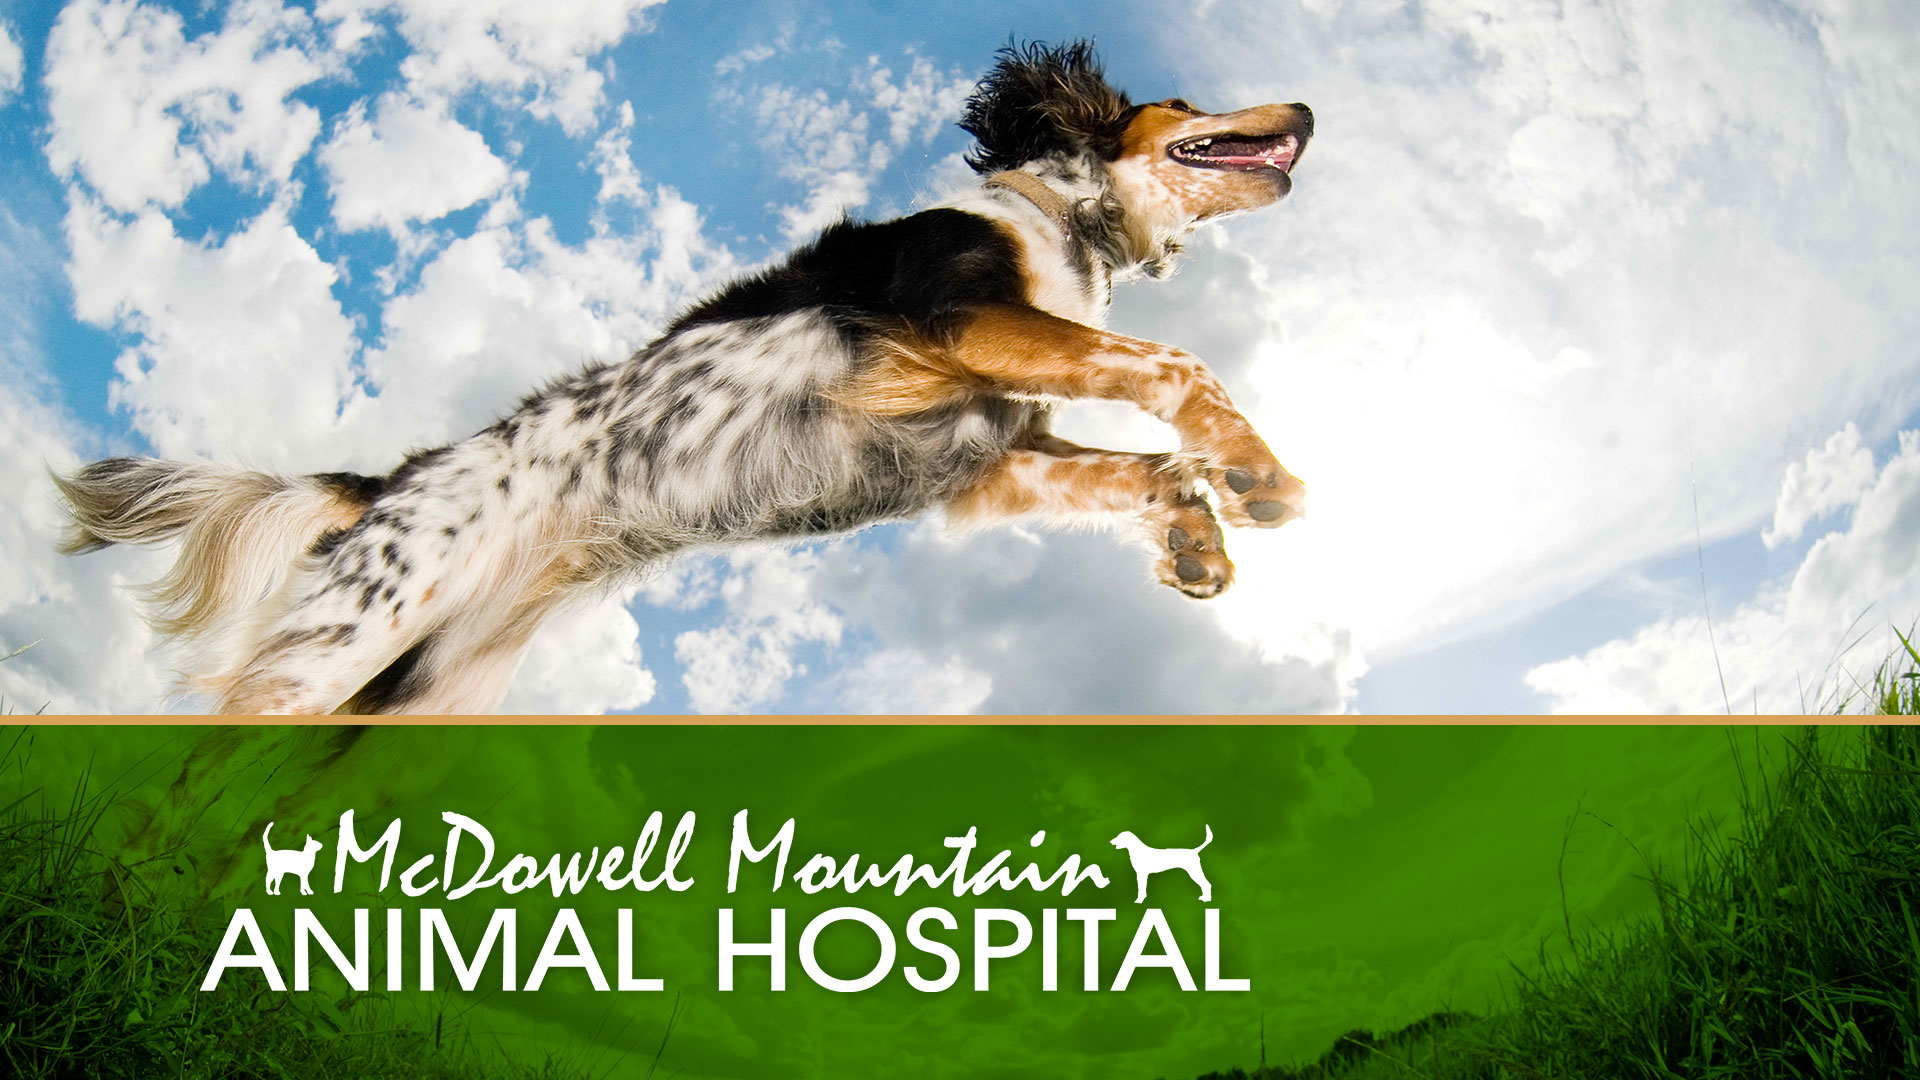 Animal Hospital Branding, Marketing, and Design